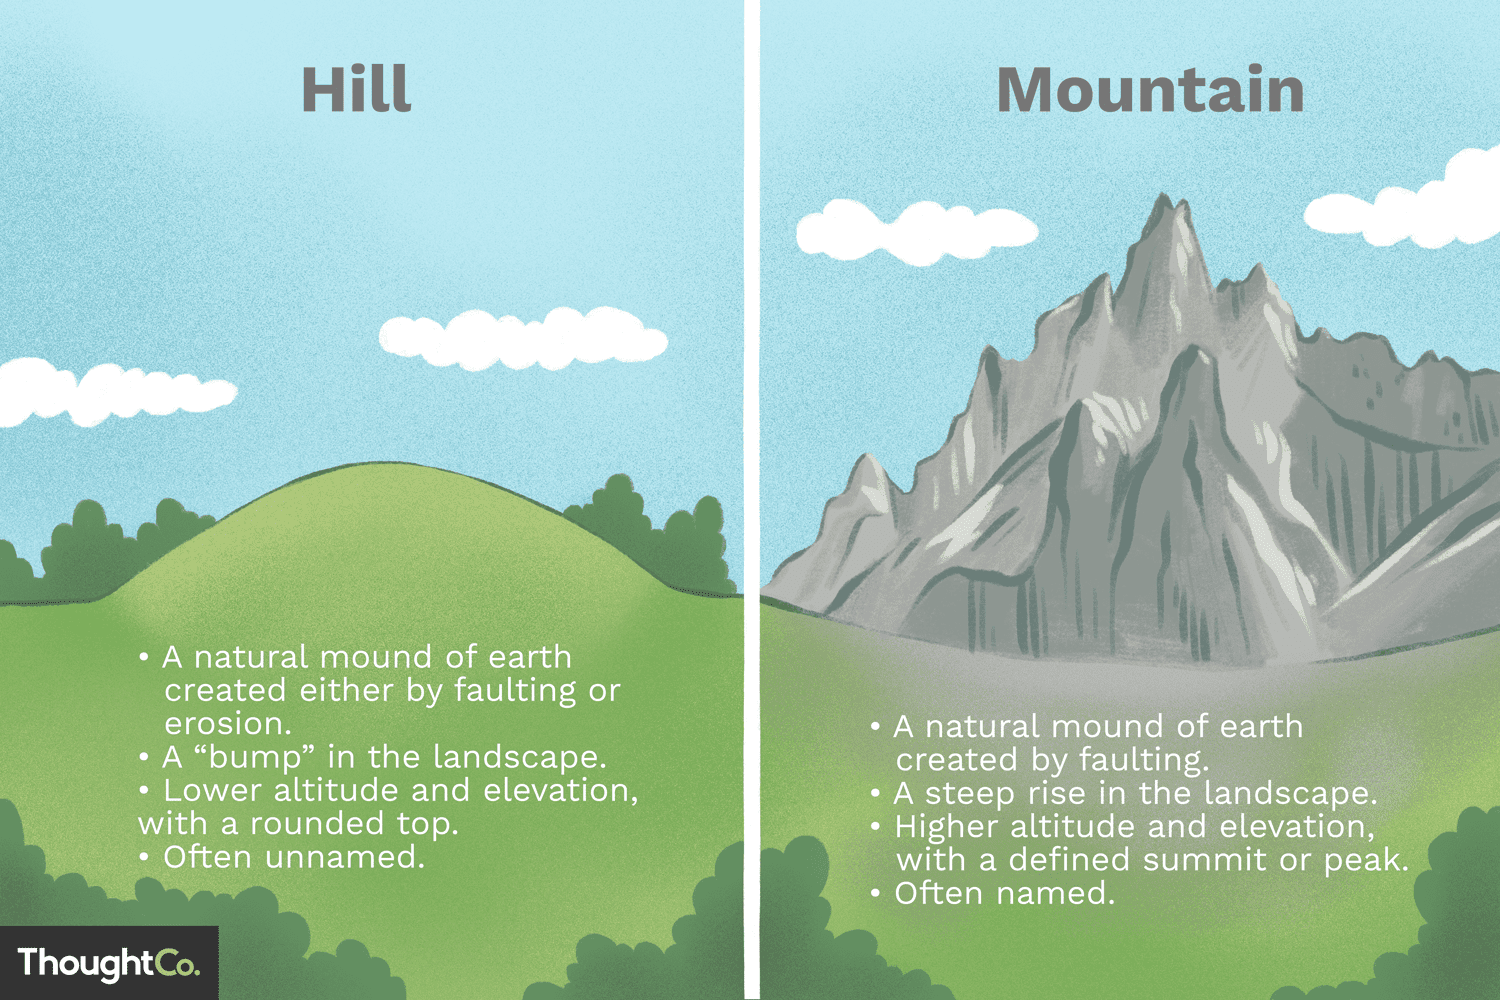 Differences Between Hills and Mountains